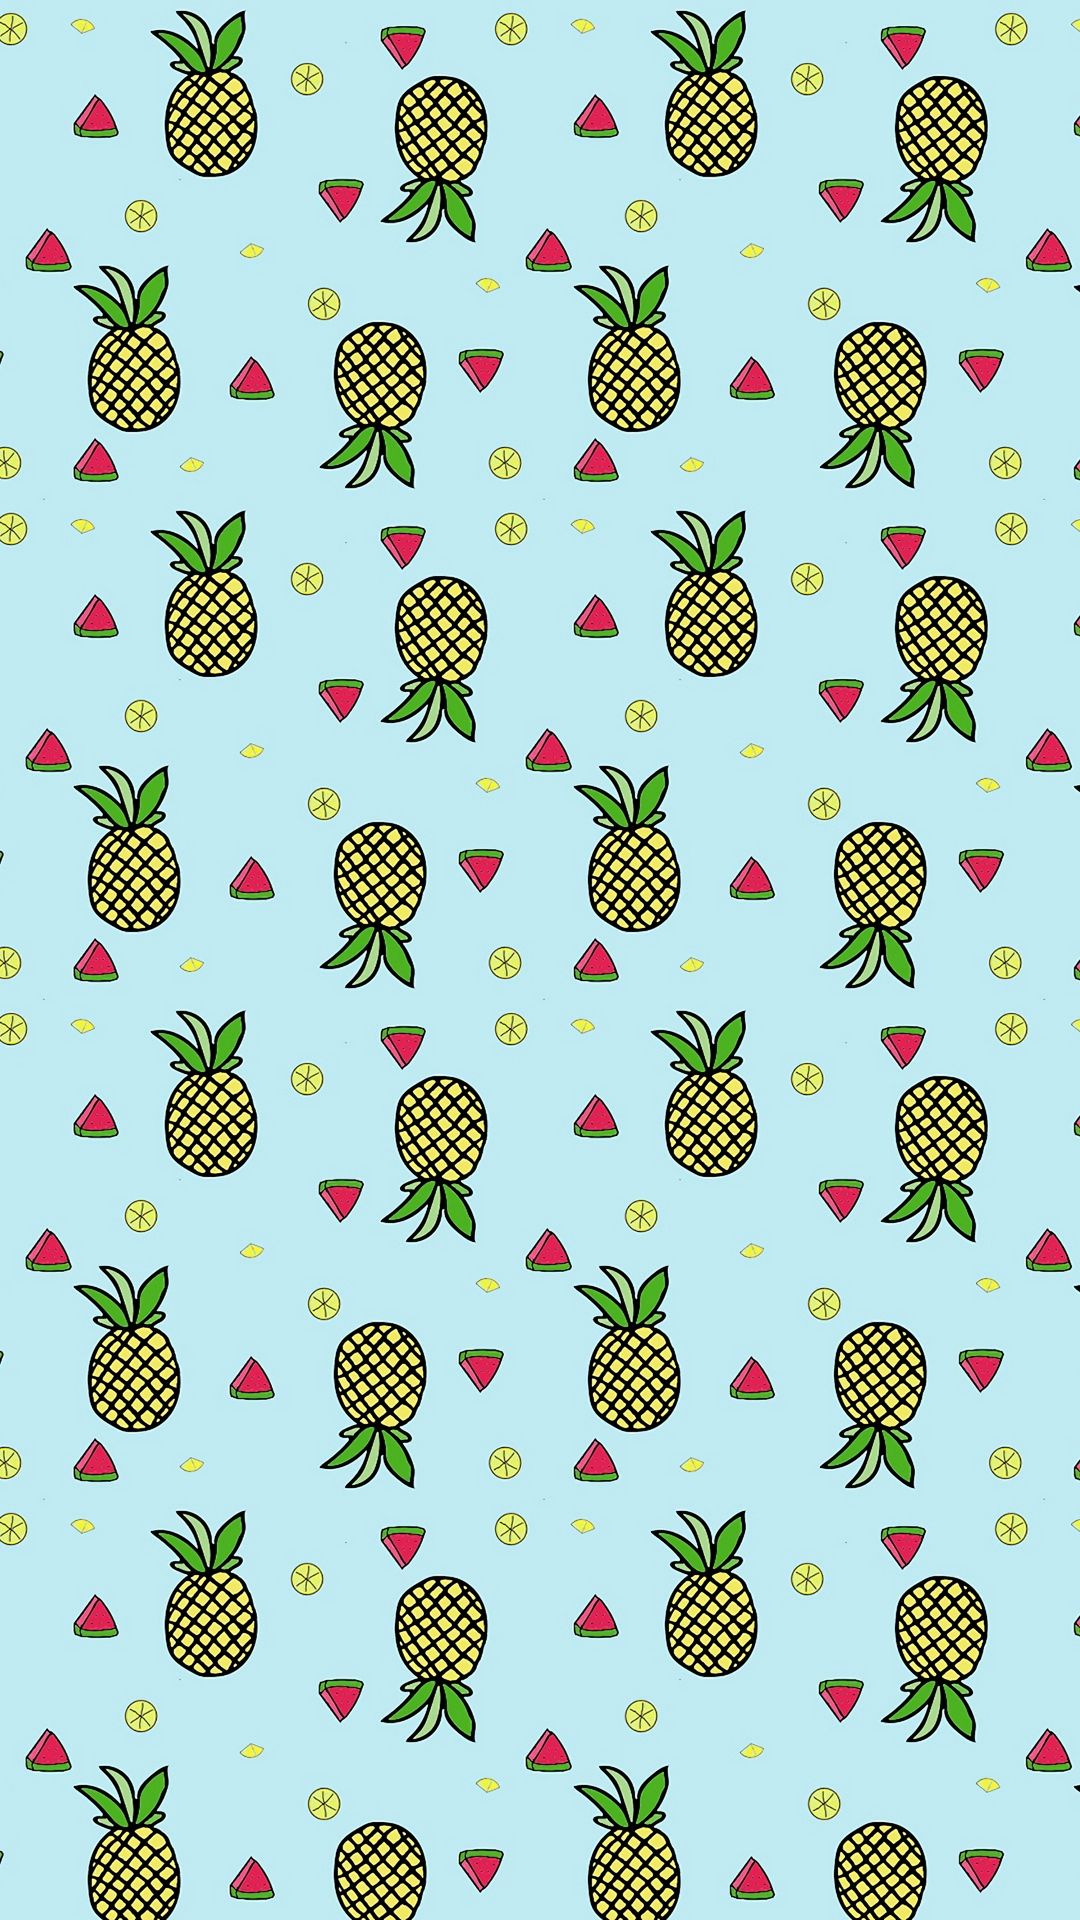 Black and White Pineapple Background